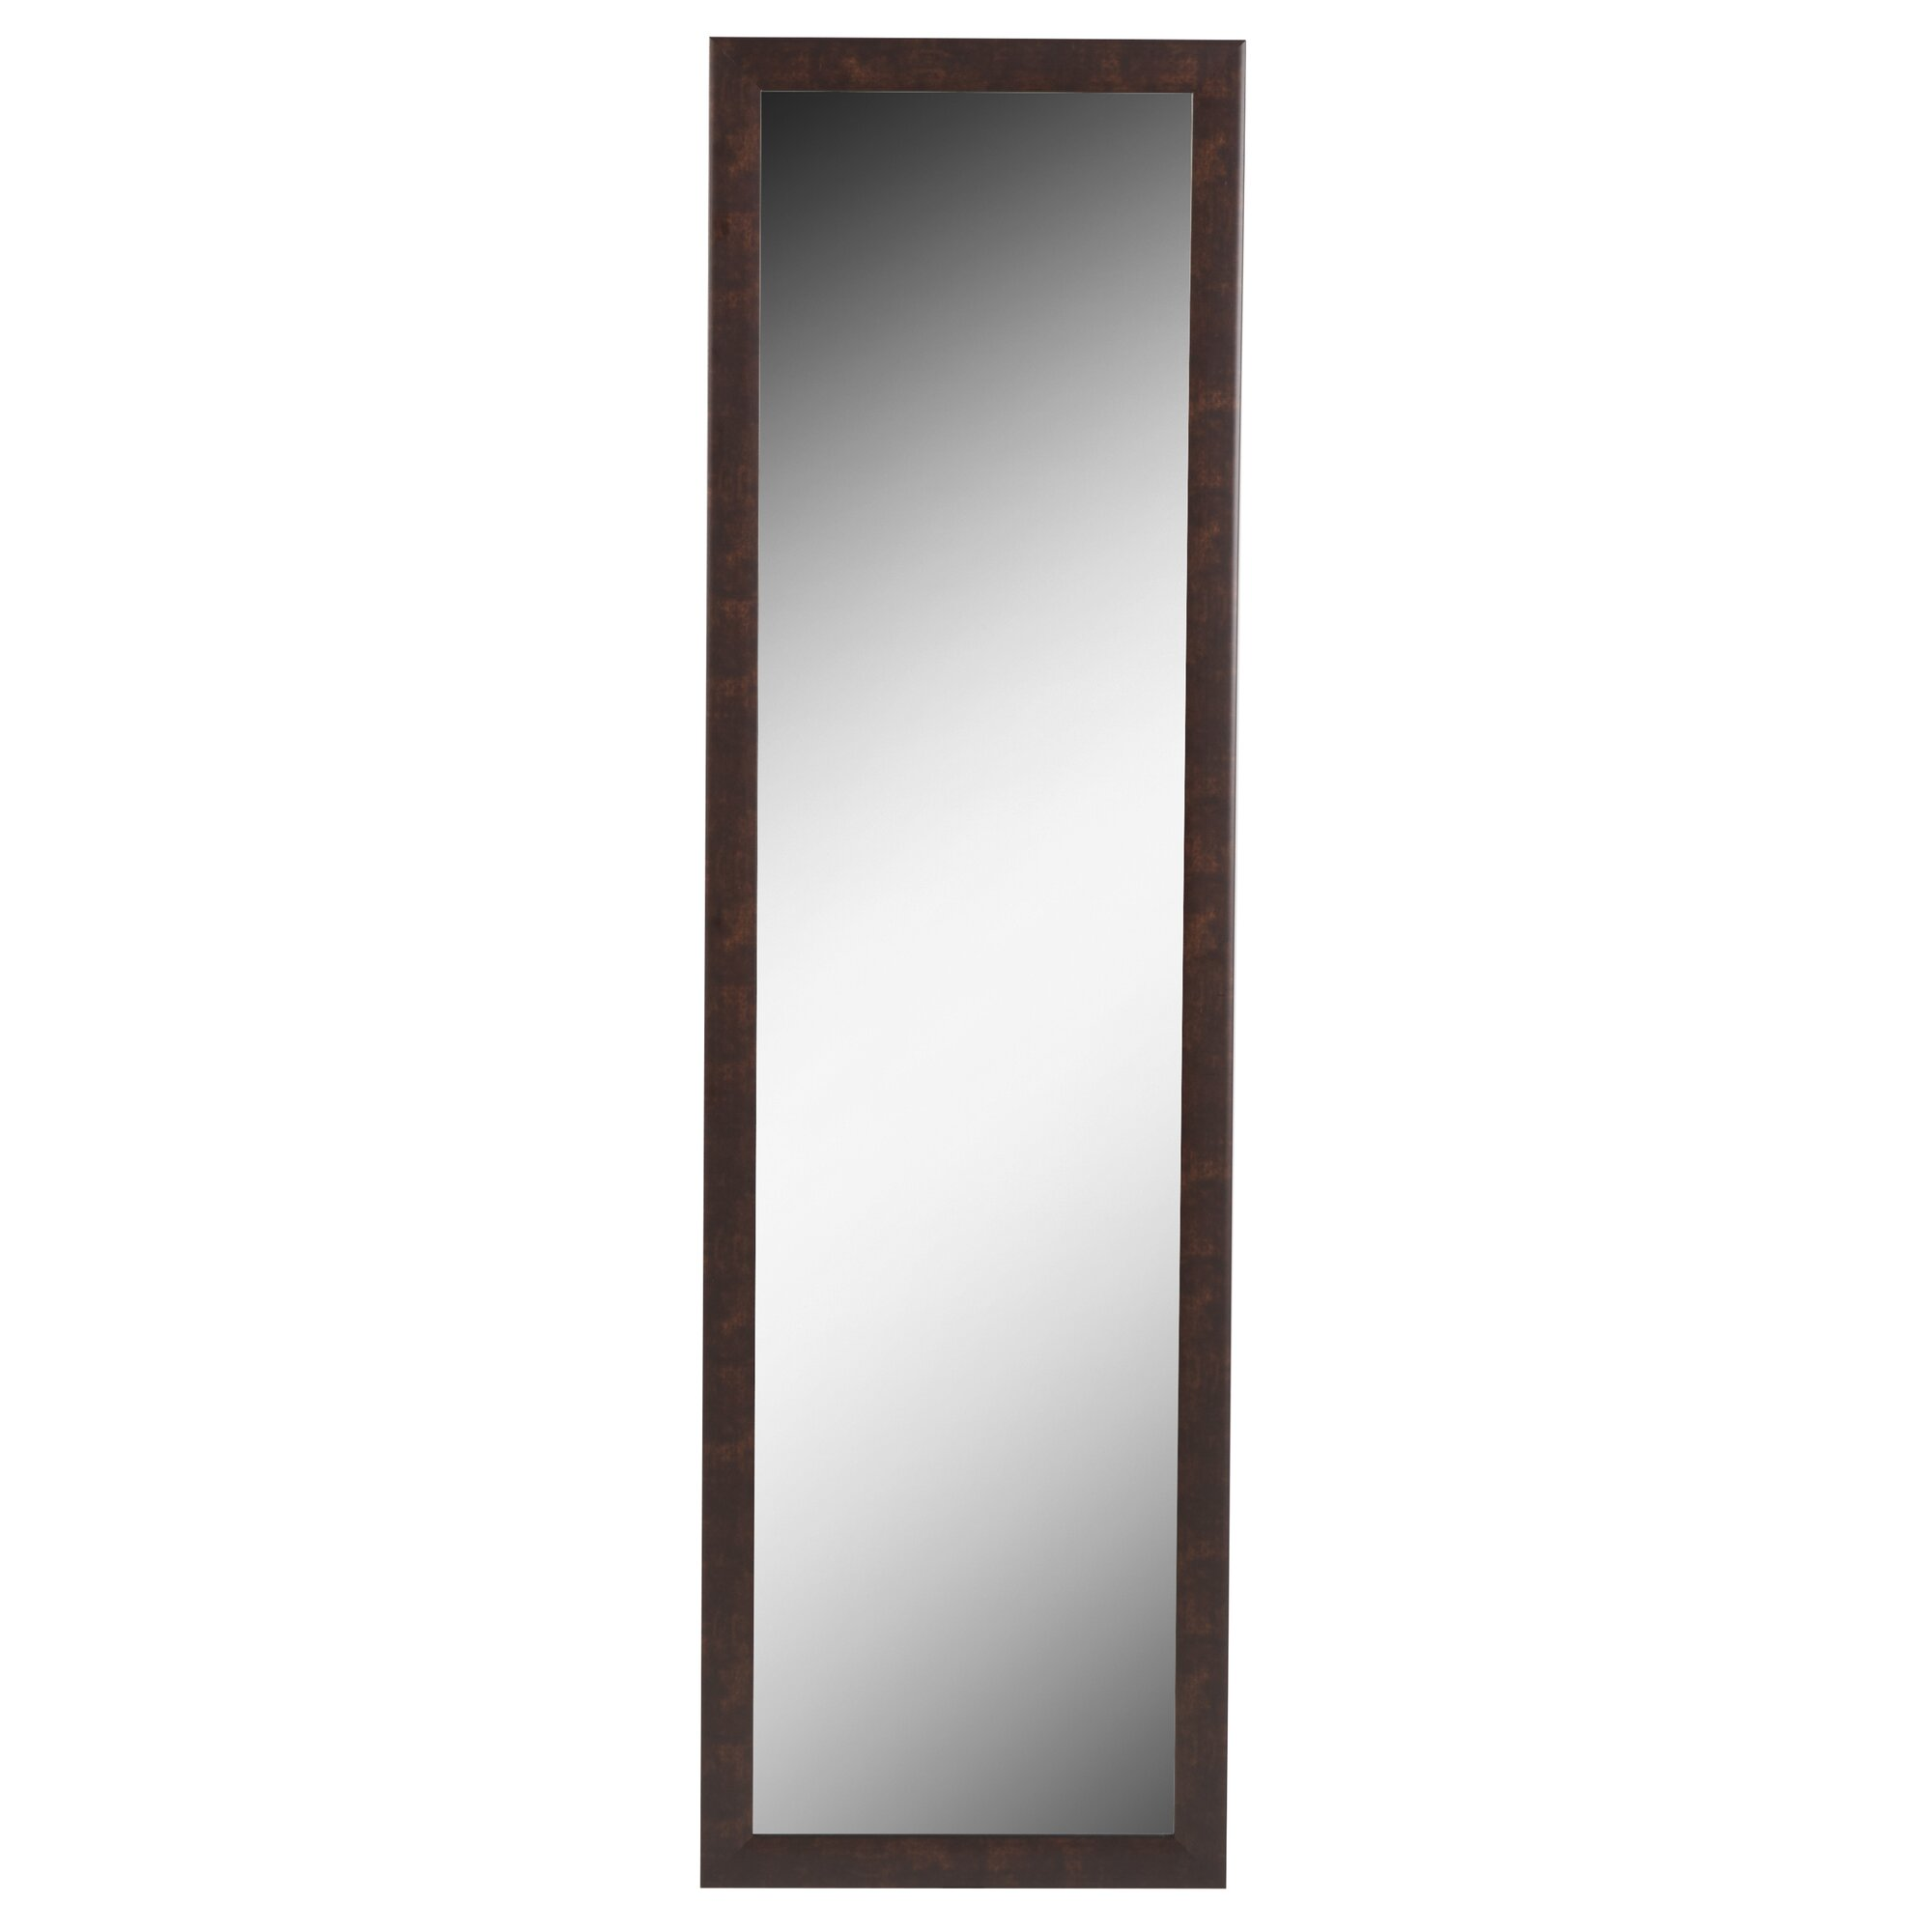 Red Barrel Studio Wall Mounted Full Length Mirror | Wayfair.ca